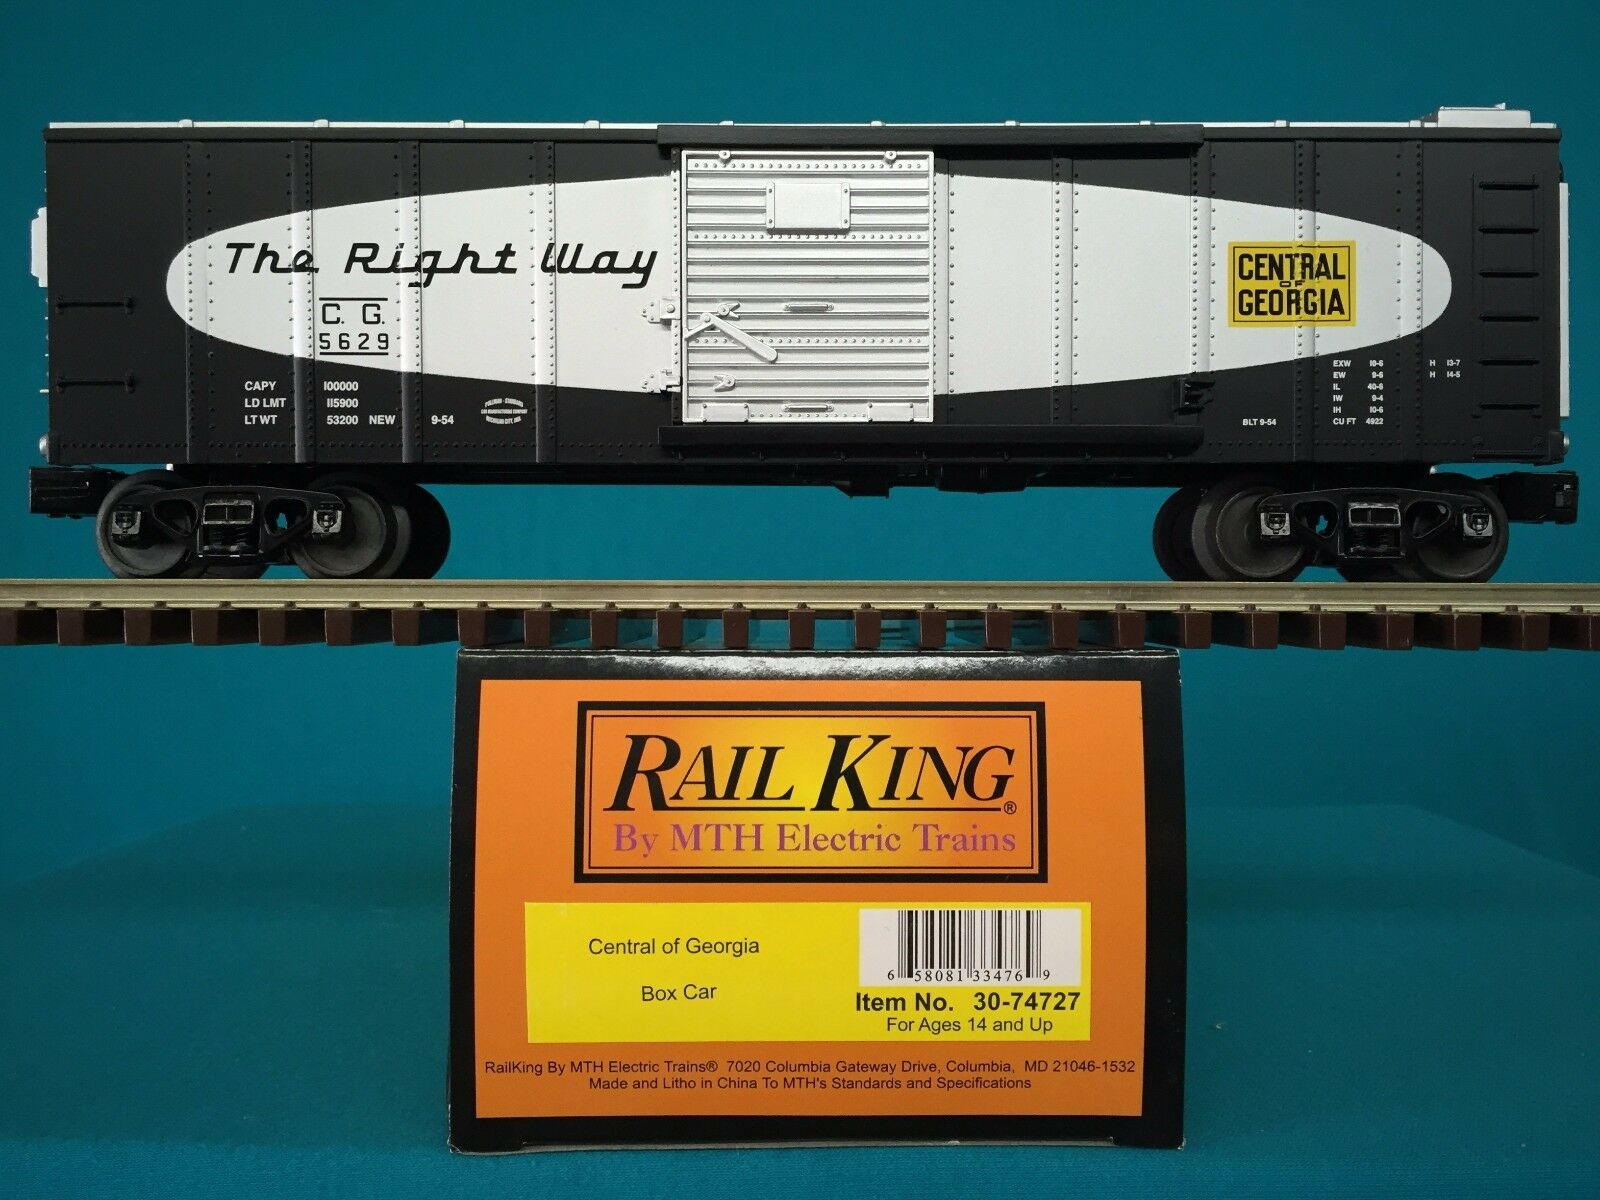 Mit railking box car zentrale georgia o   o27 waggons 30-74727